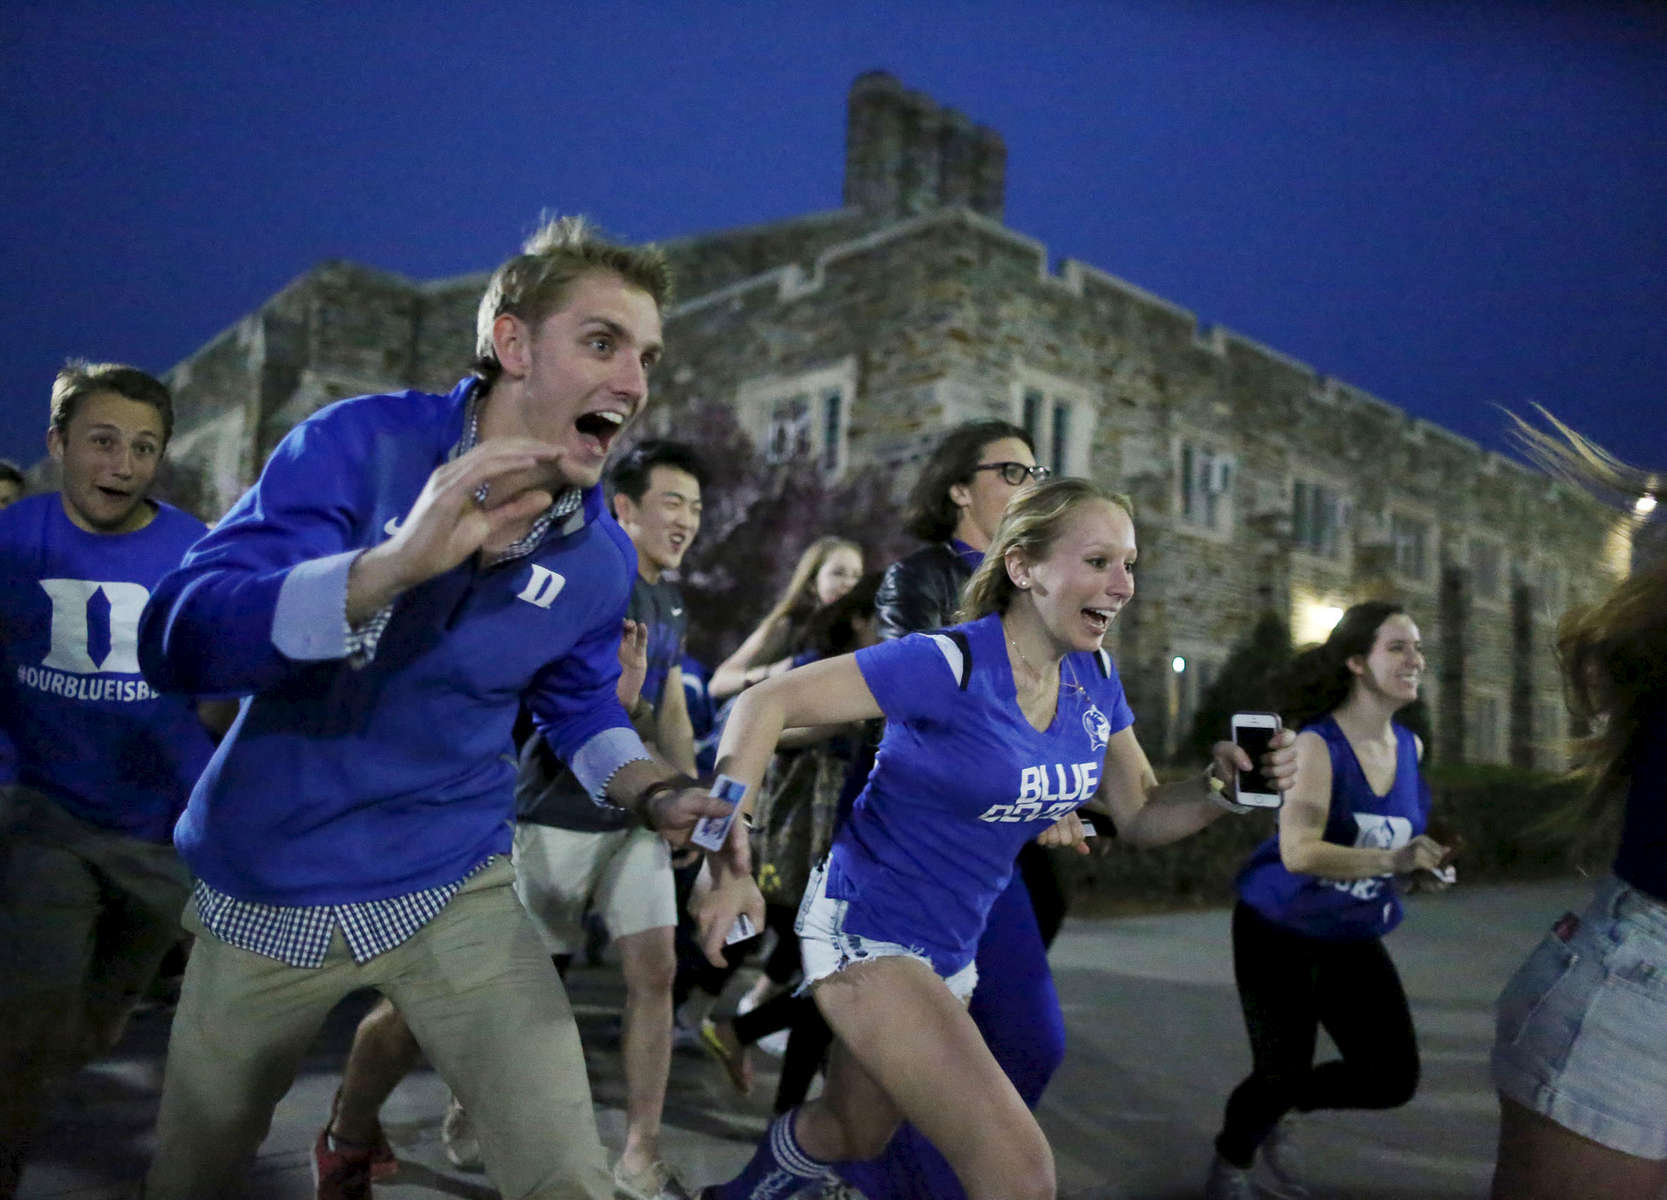 Student Photographer of the Year: Runner UpAl Drago, Elon UniversityDuke students rush into Cameron Indoor Stadium for the viewing party before Duke took on Wisconsin in the NCAA national championship title on April 6, 2015 in Durham, N.C.